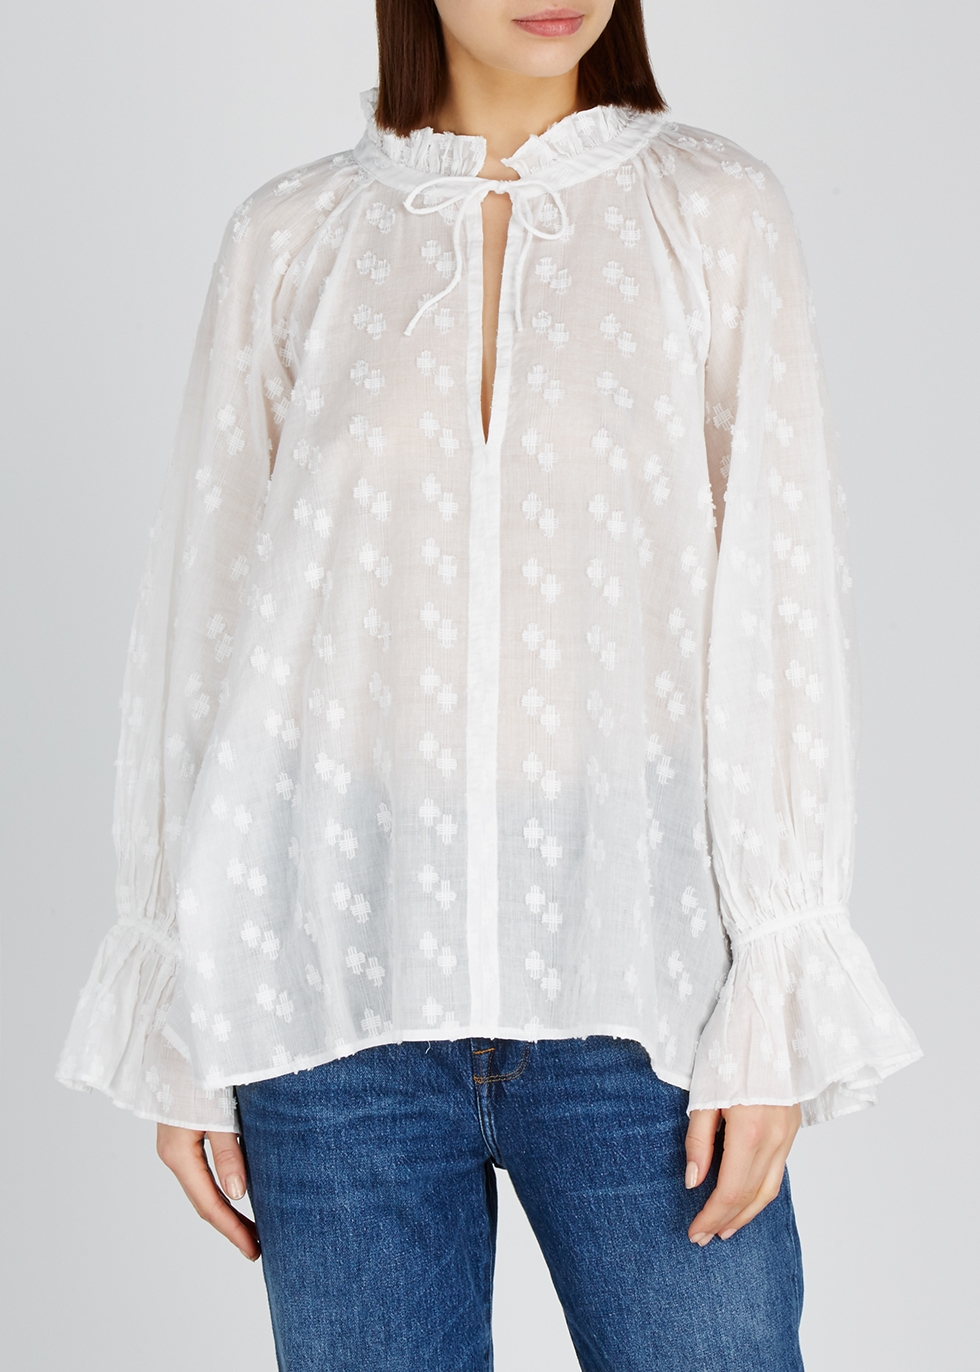 Thelina fil coupé cotton blouse - Nili Lotan